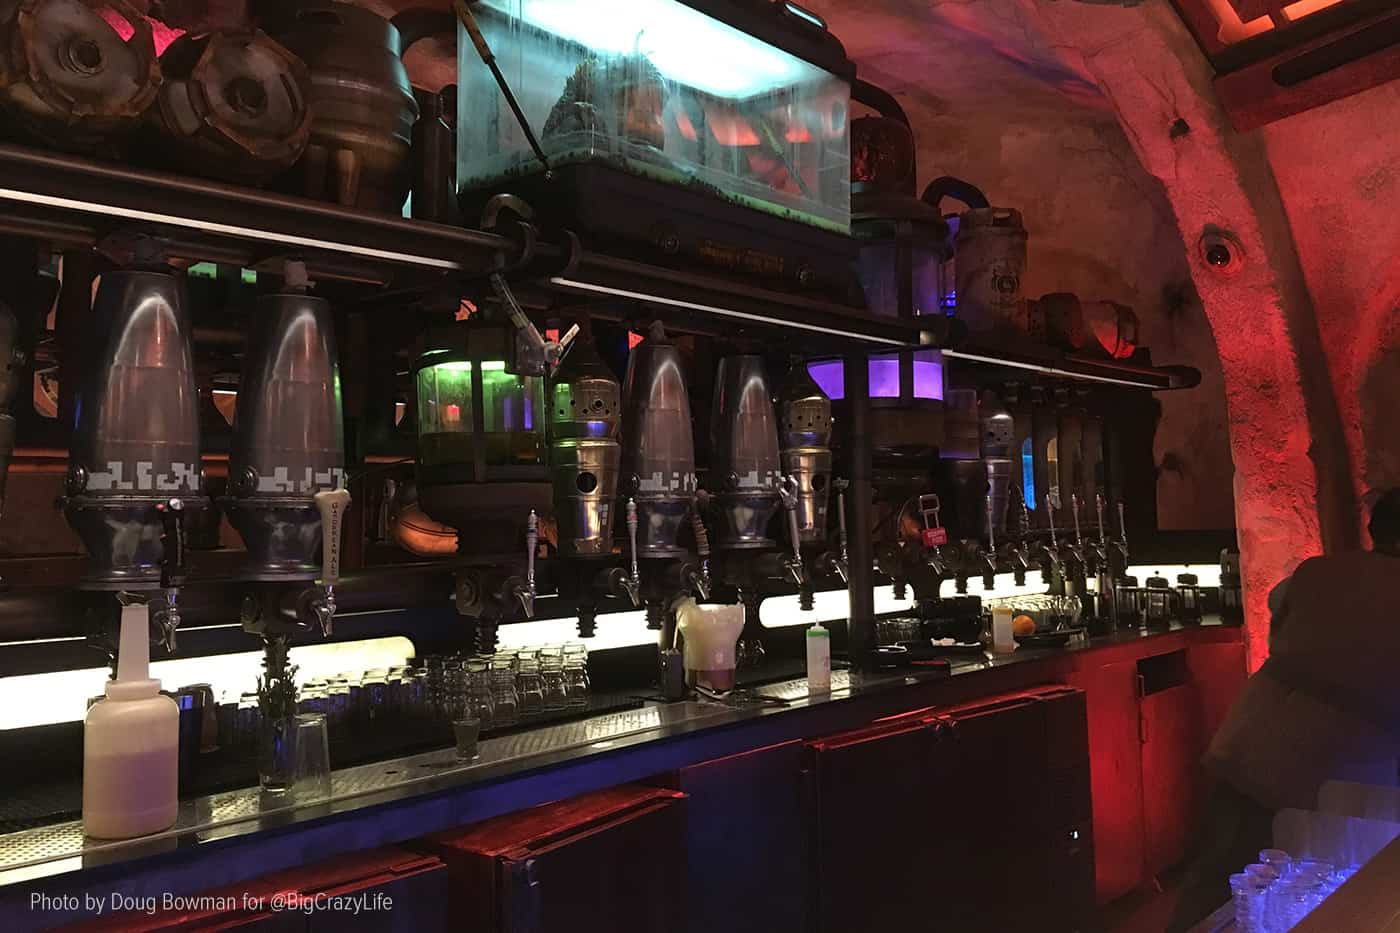 The many taps behind the bar at Oga's Cantina